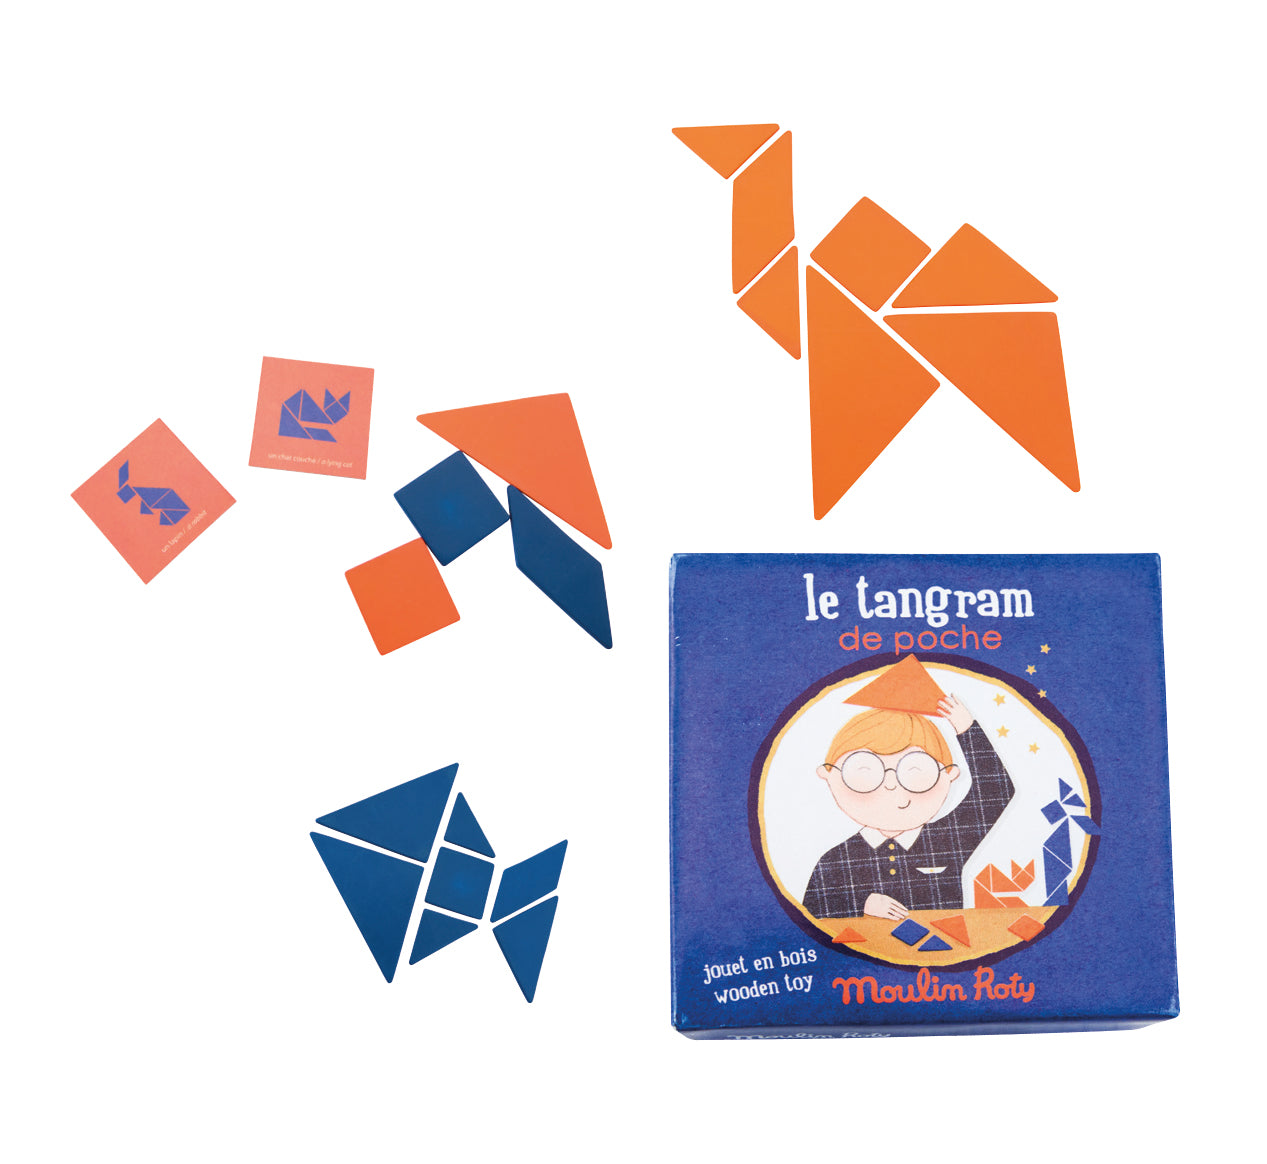 Image of the Tangram box, two playing cards and the orange and blue wooden shapes